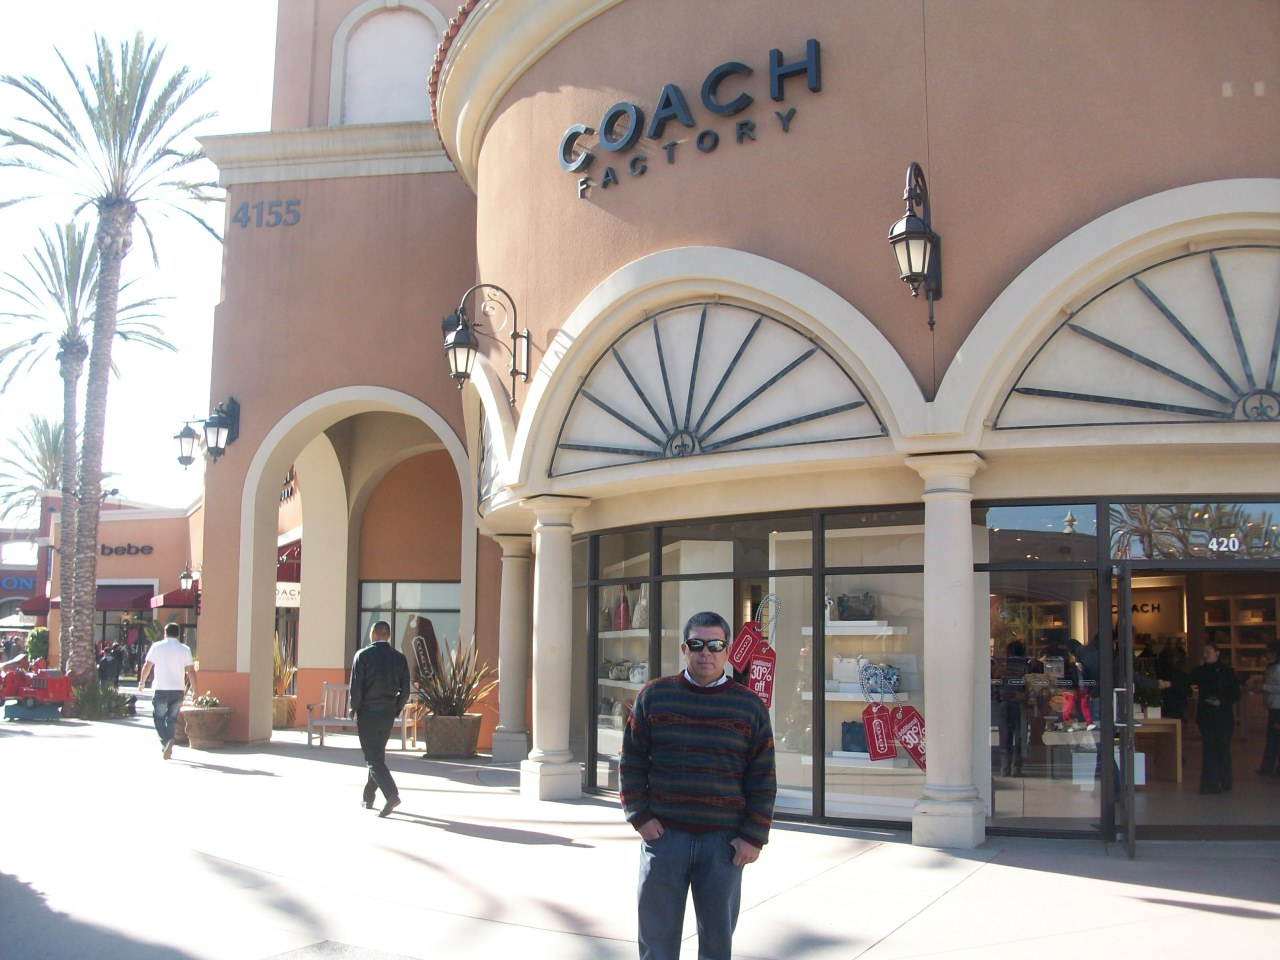 Las americas Premium Outlets is a outlet mall in San Ysidro, California located directly on the Mexico-United States border. This place has hundreds of stores from Ross to TJ max. You can get great deals here during the holidays.4/4().